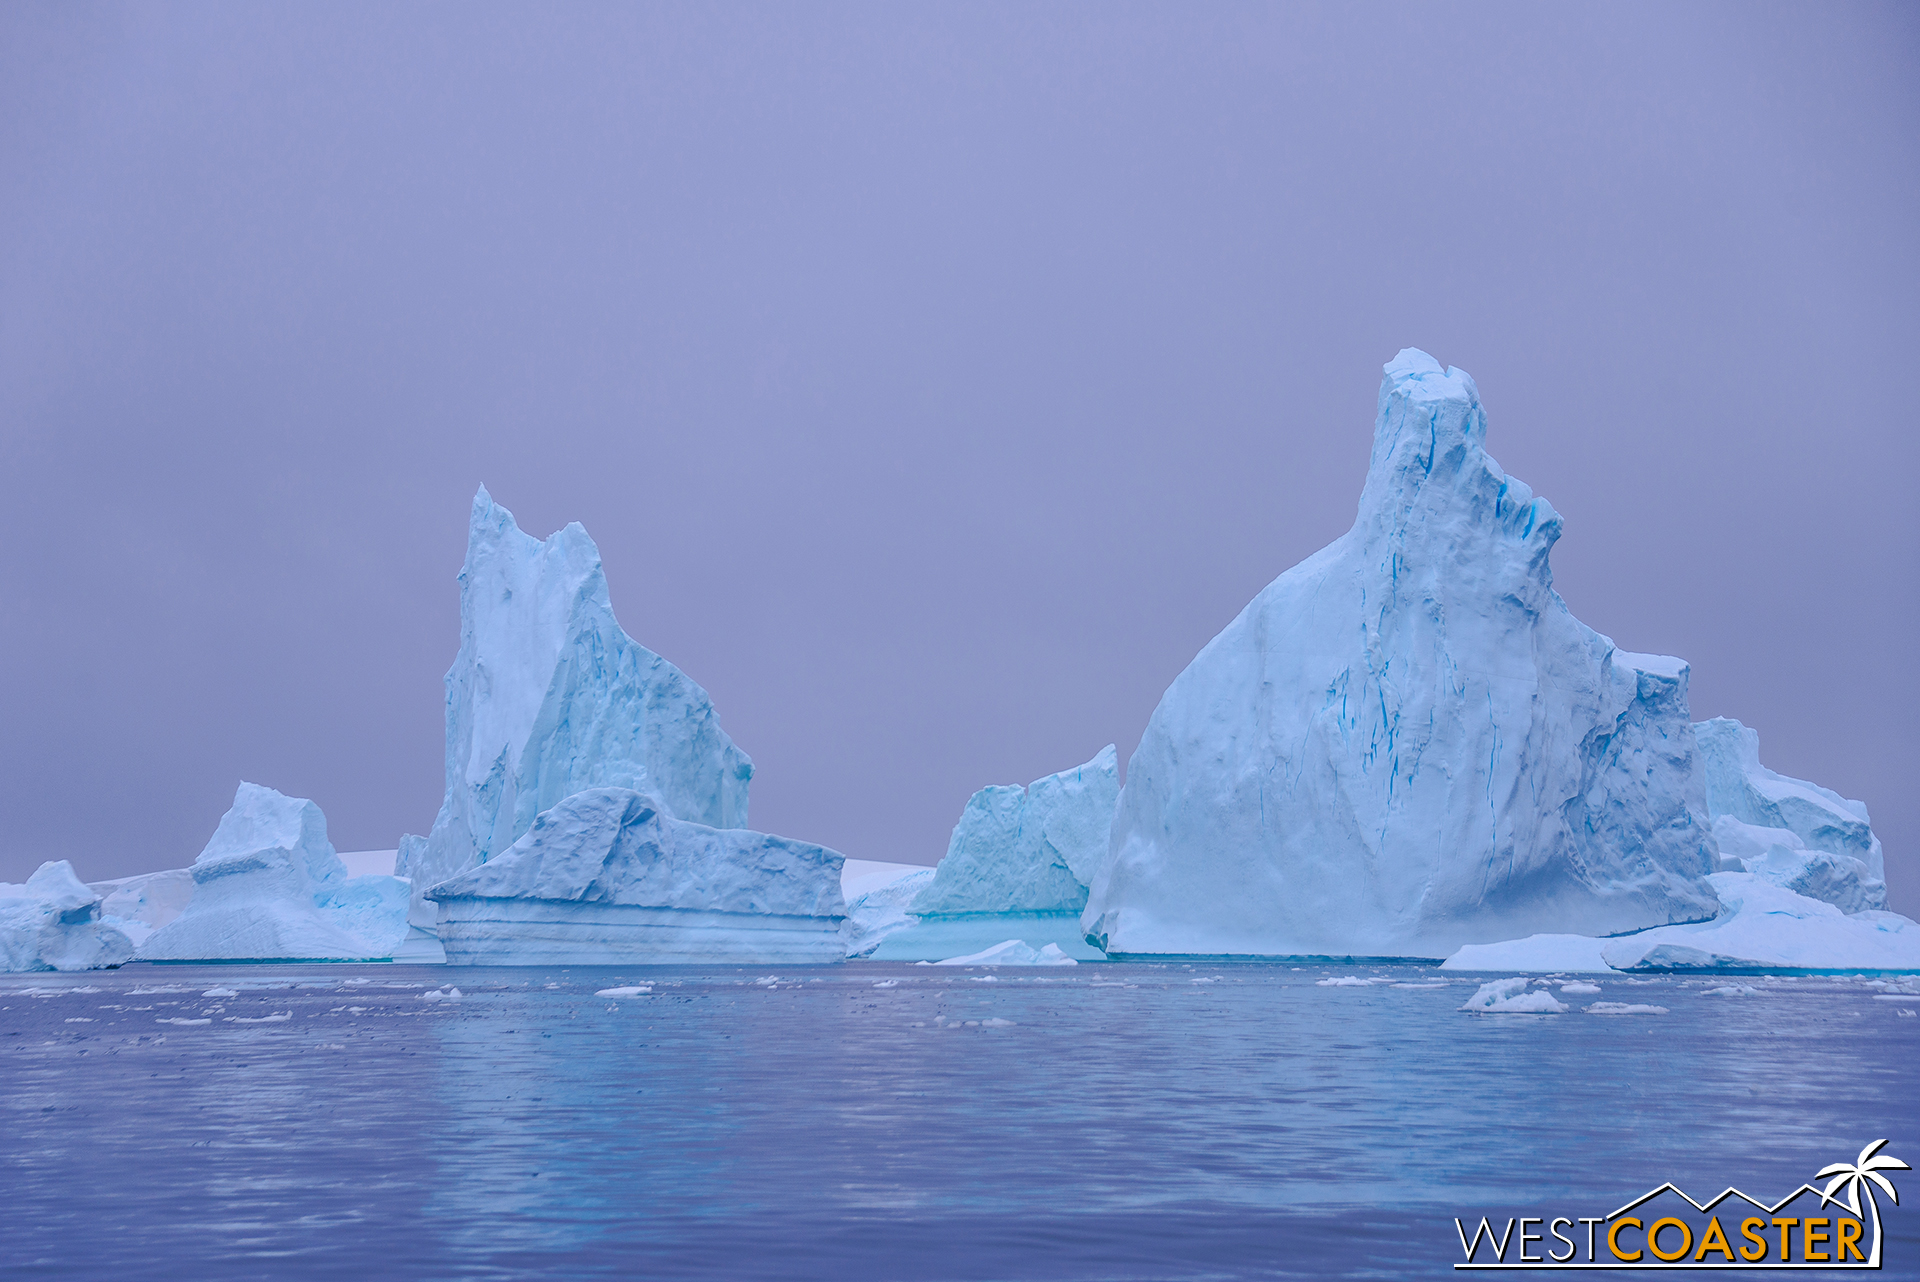 Elsewhere, icebergs can reach several stories tall.